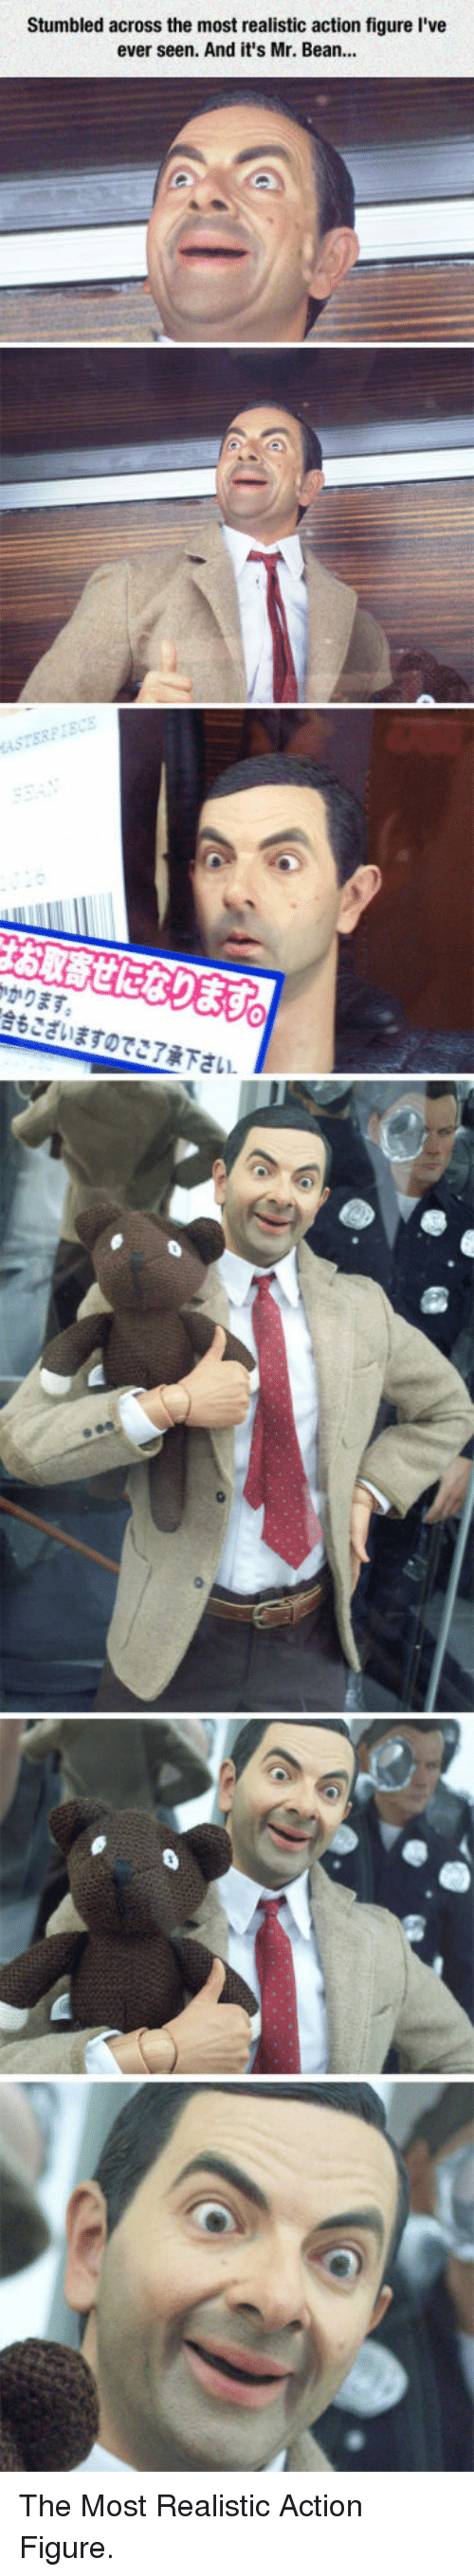 Mr. Bean, Bean, and Action: Stumbled across the most realistic action figure I've  ever seen. And it's Mr. Bean...  ASTERPI  かります  合もございますのでご了承下さい <p>The Most Realistic Action Figure.</p>